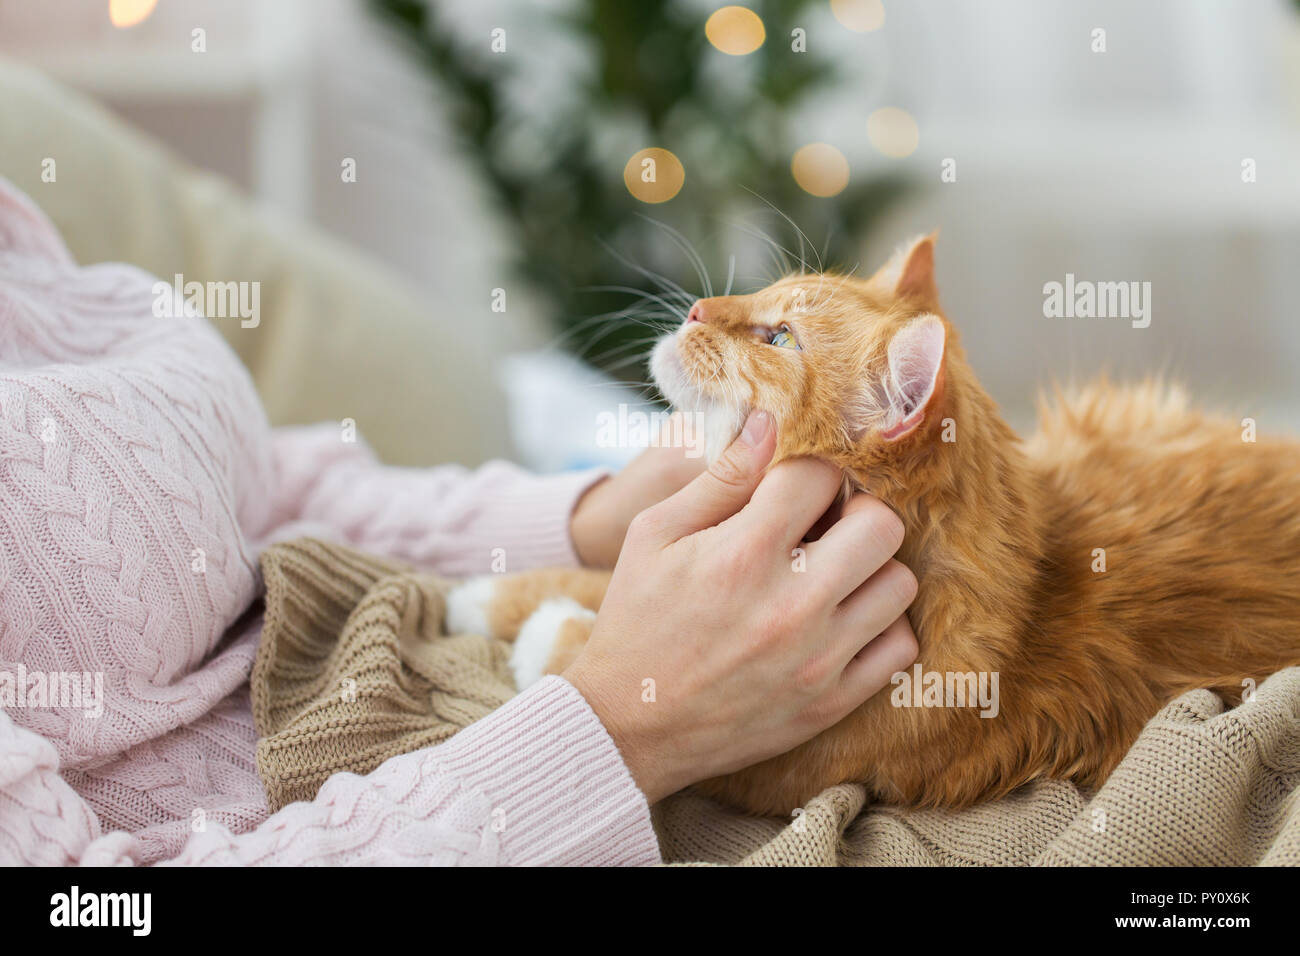 close up of owner stroking red cat in bed at home - Stock Image